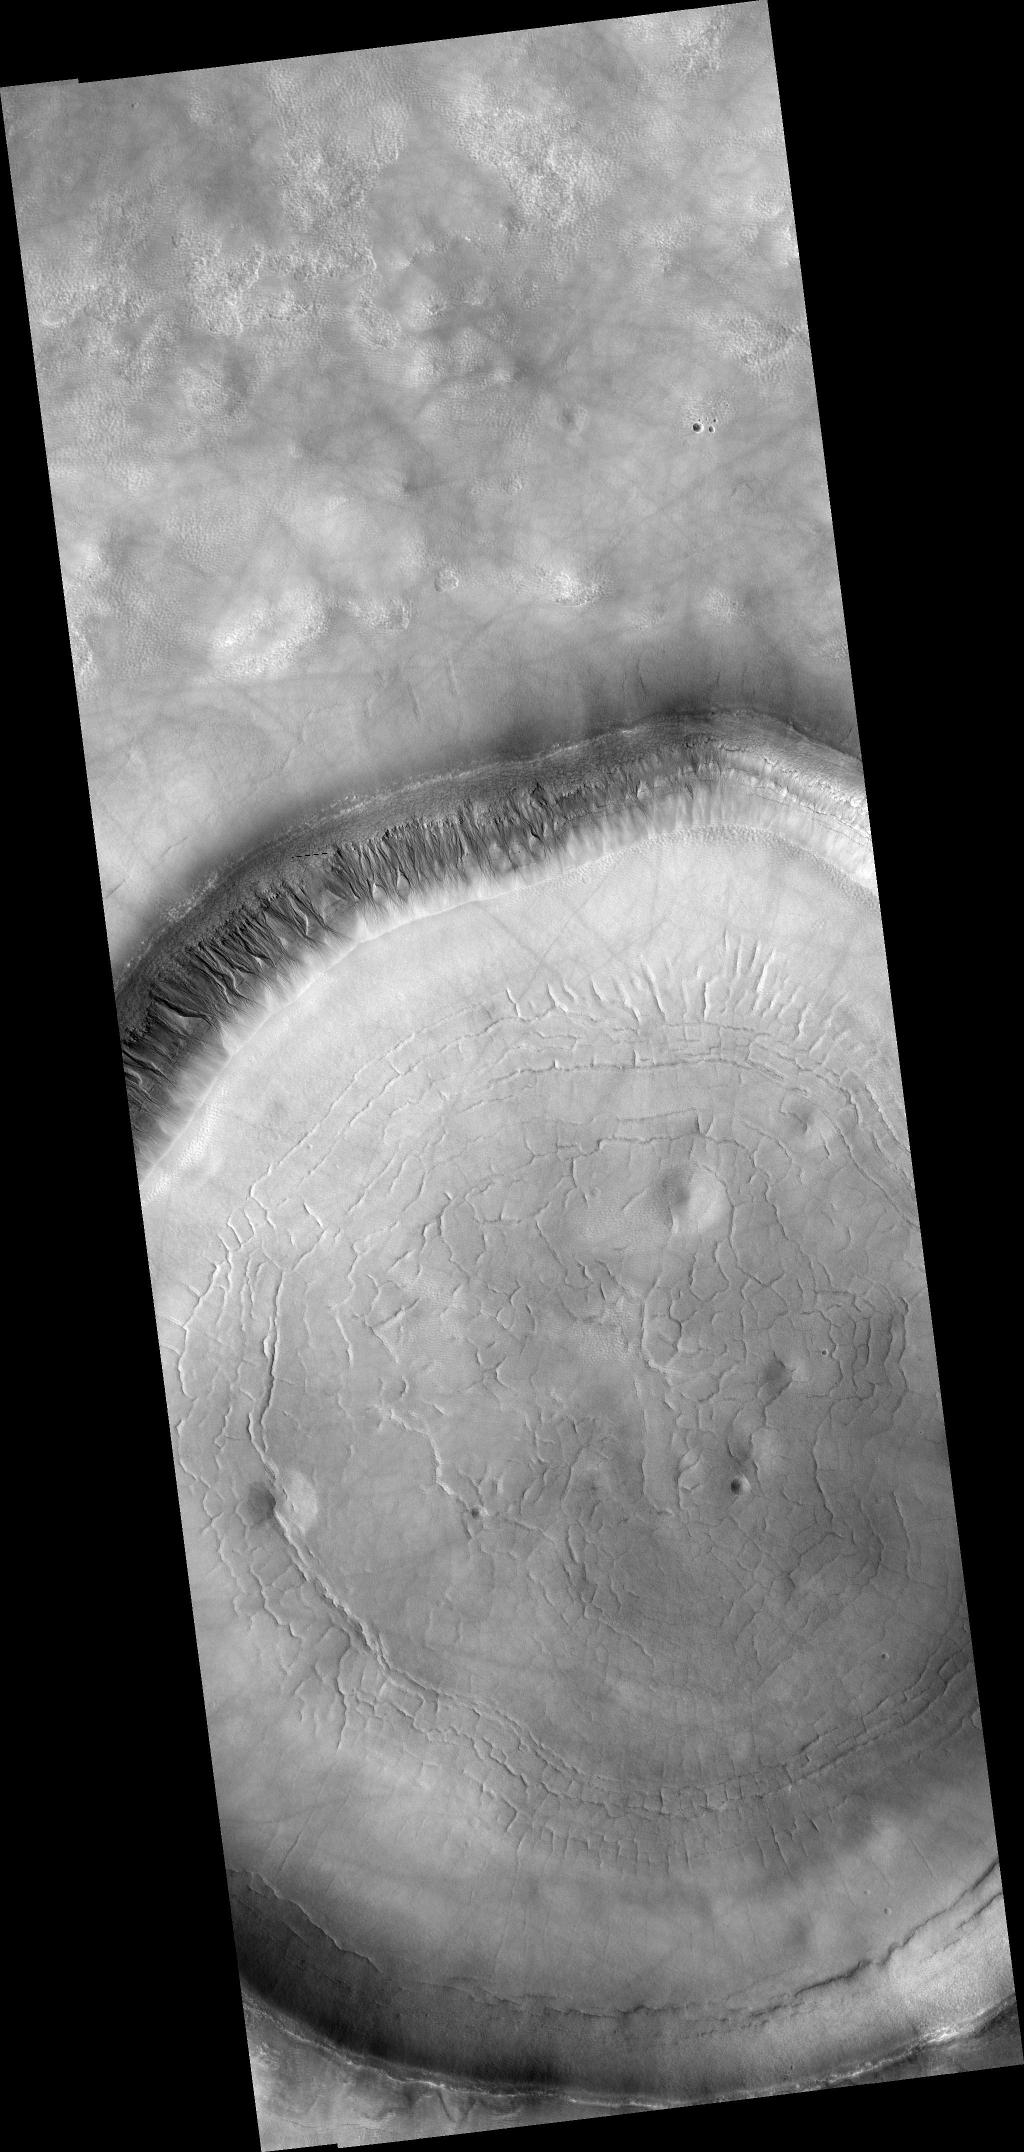 HiRISE image (PSP_001942_2310) shows a crater approximately 11 km (7 miles) in diameter, located in Acidalia Planitia, part of the Northern Plains. Several features in and around this crater are suggestive of fluids and ice at and near the surface. 